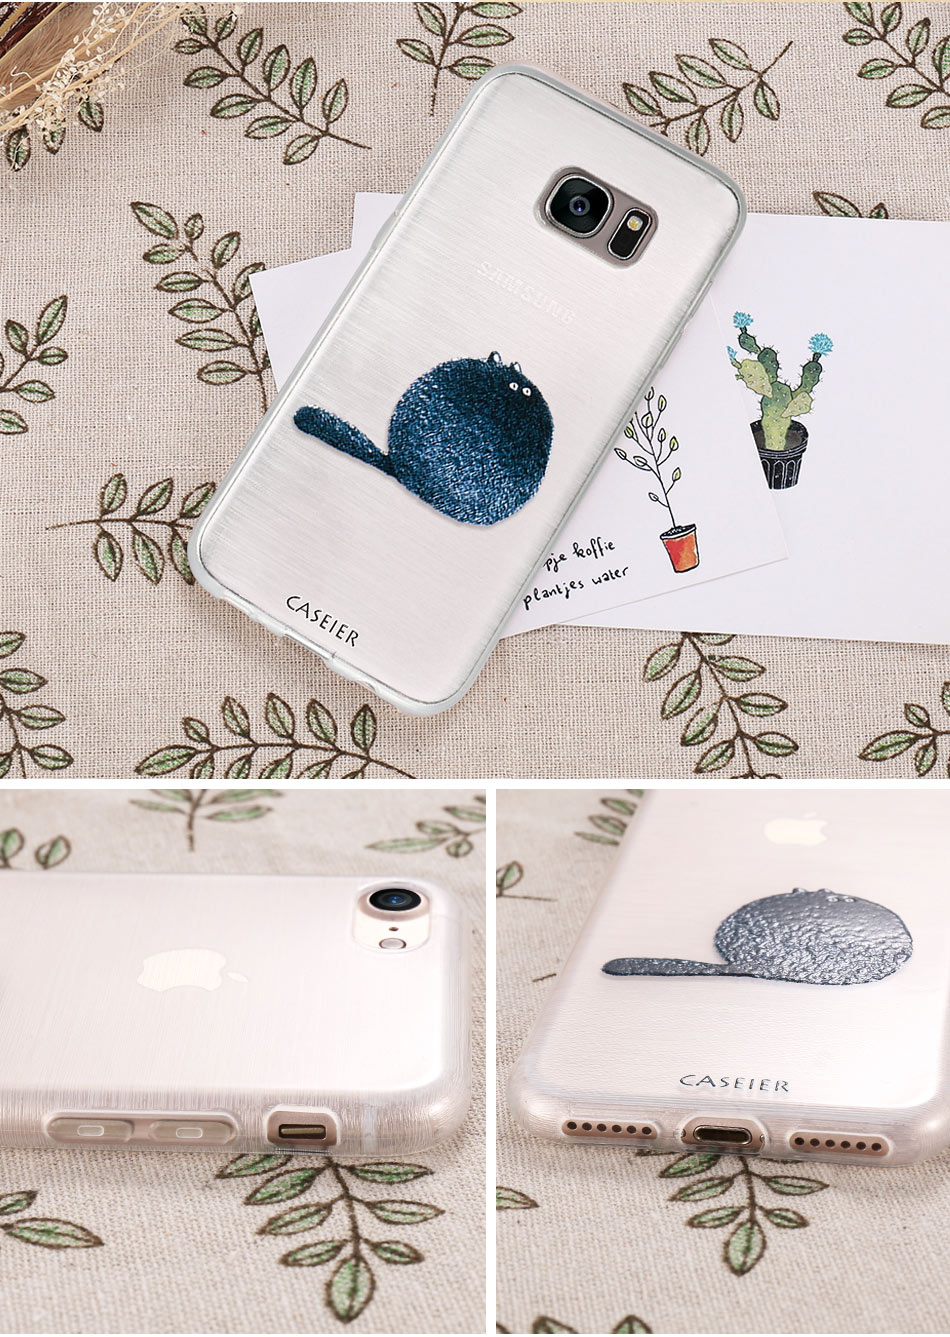 Cute Cat Soft Silicone Shell Case For Samsung Phones